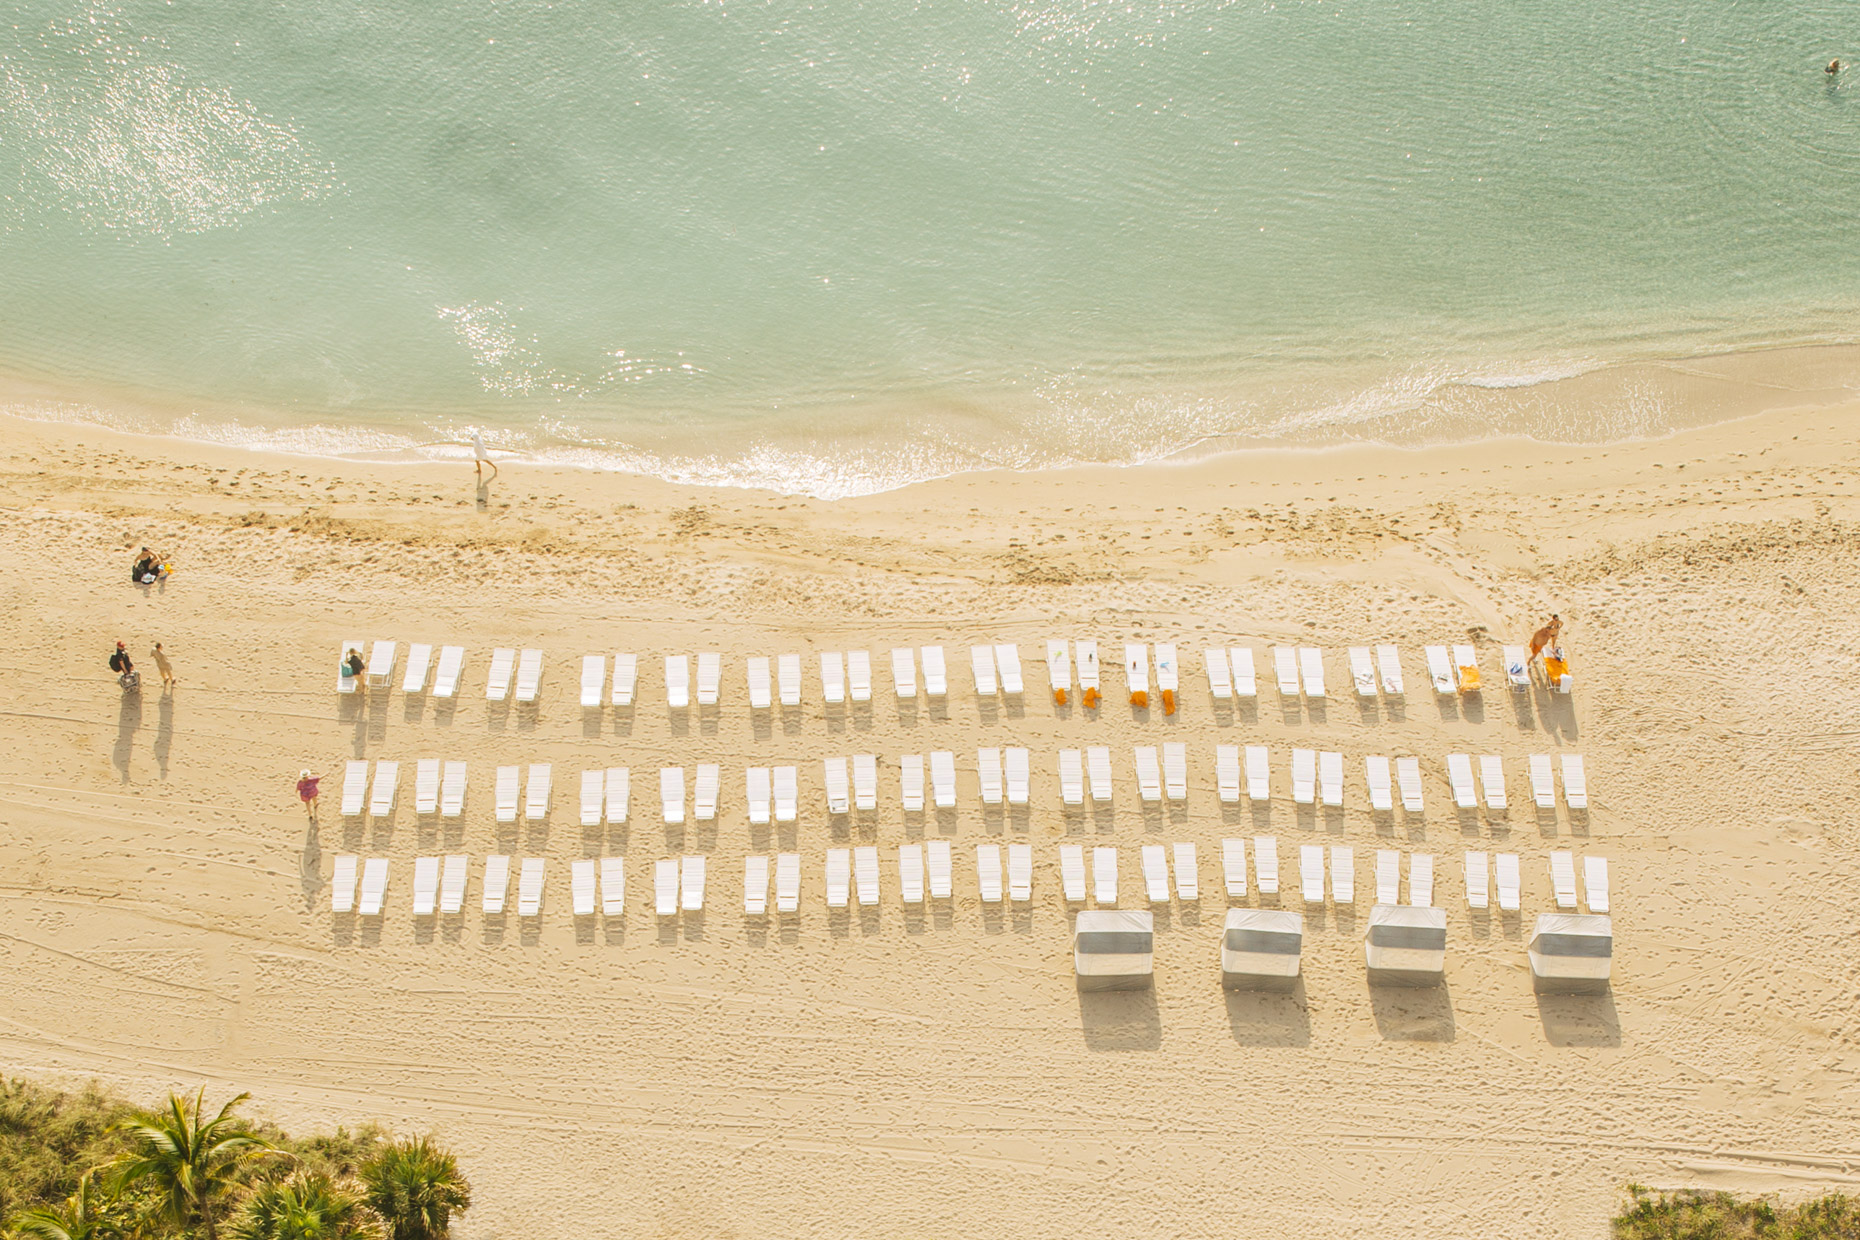 Overhead view of hotel resort chairs by beach and ocean